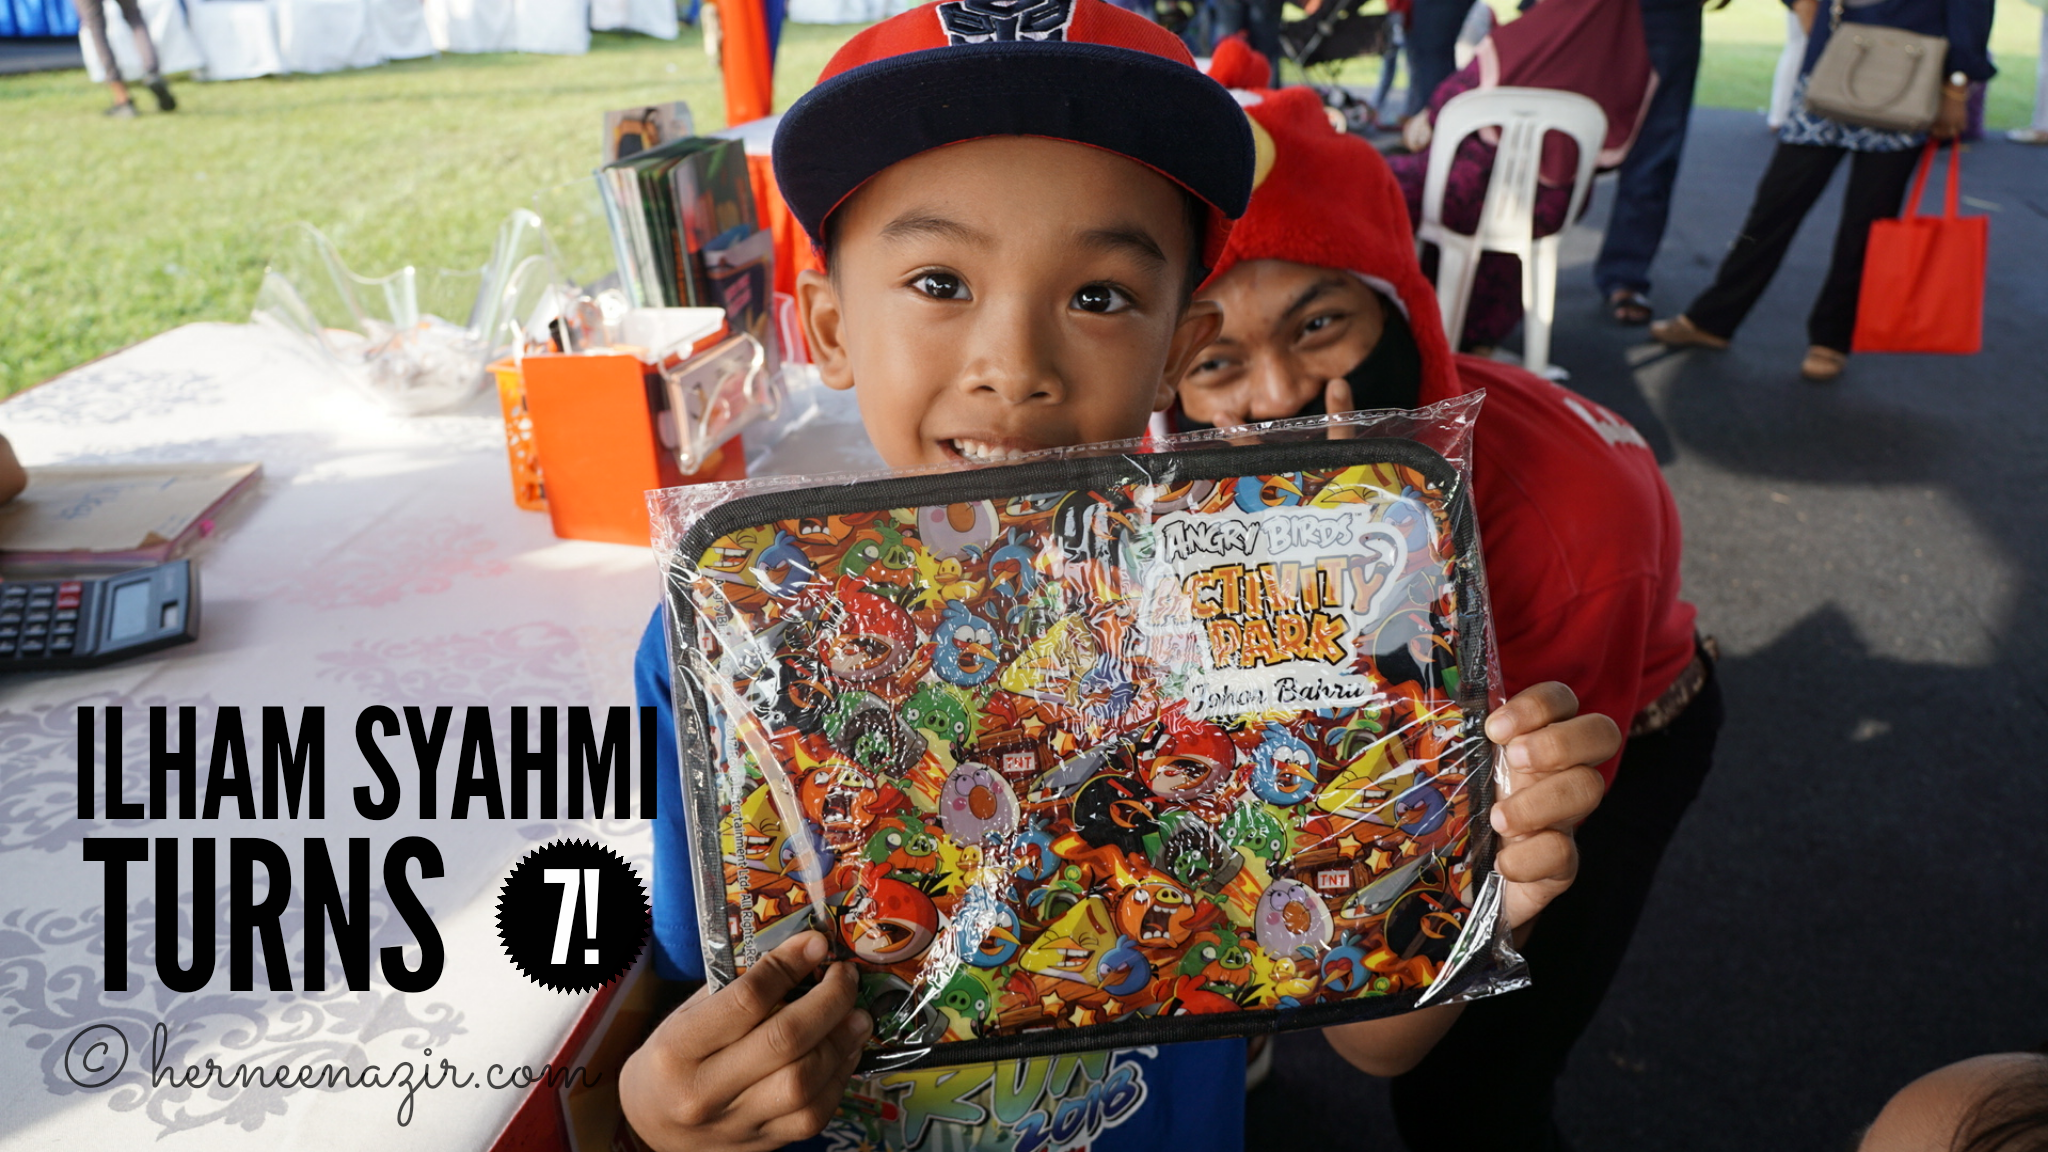 Ilham Syahmi Turns 7! (14 July 2018)